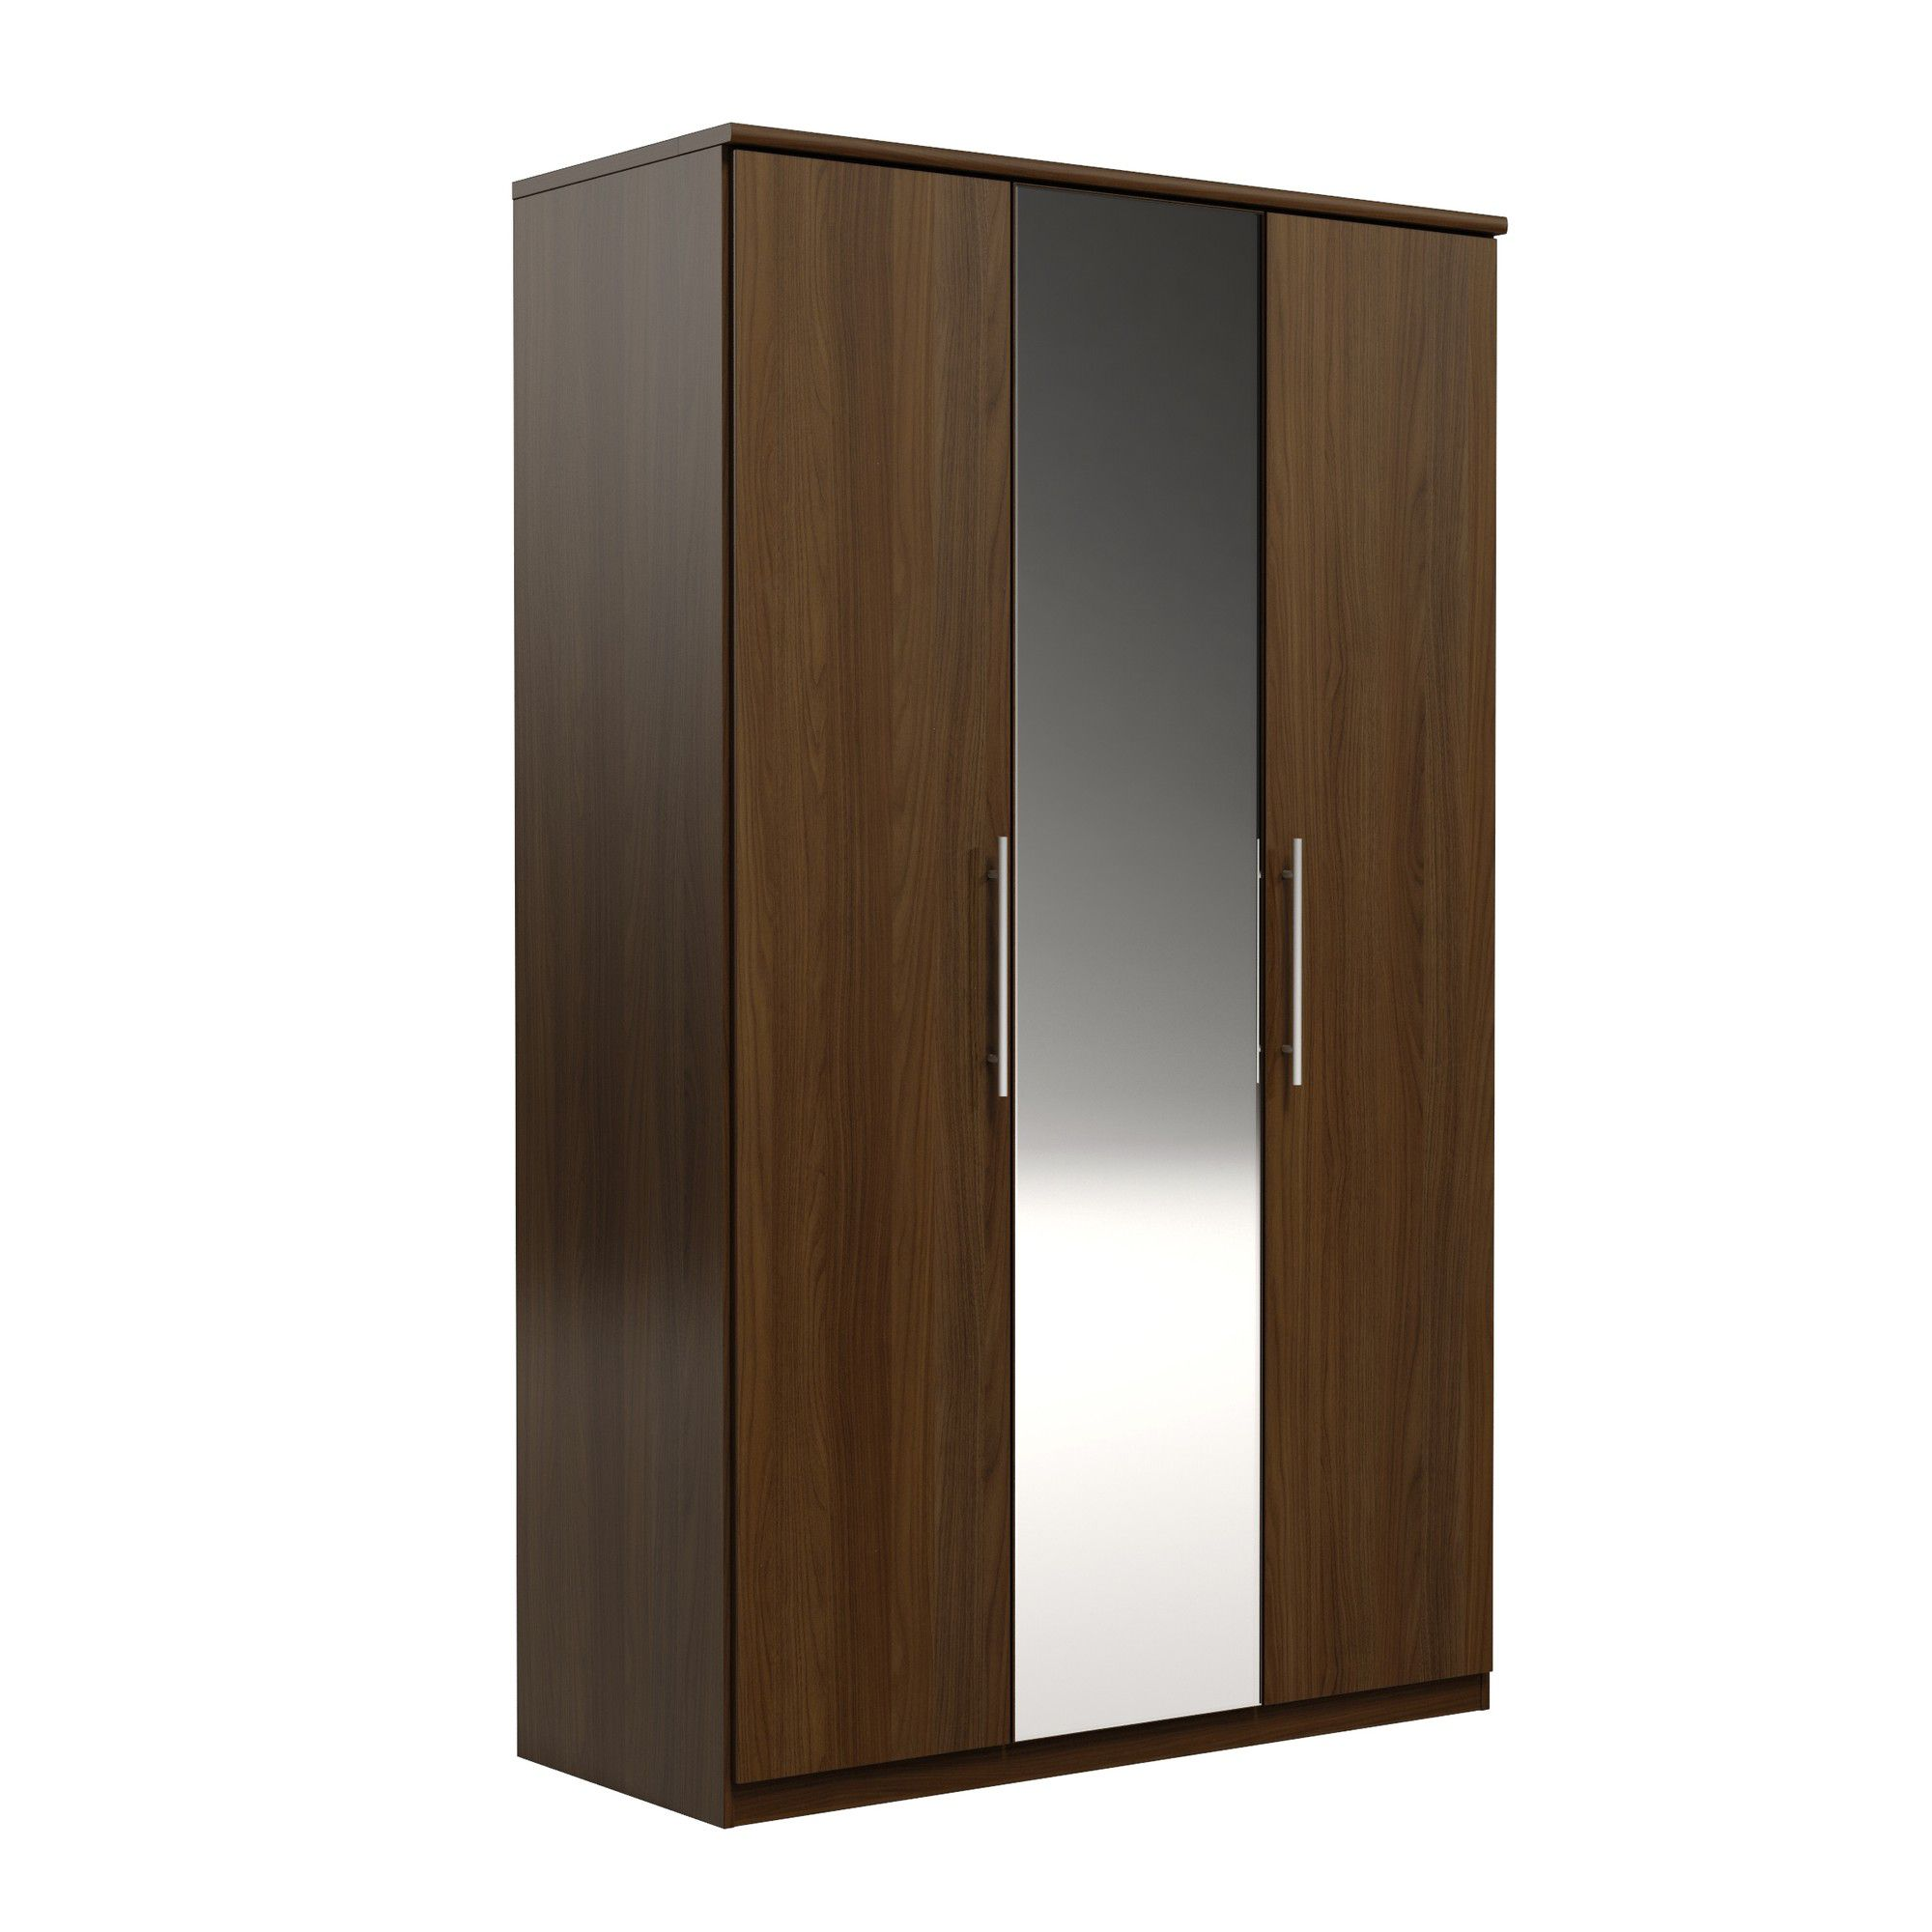 Urbane Designs Prague 3 Door Wardrobe - Walnut at Tesco Direct